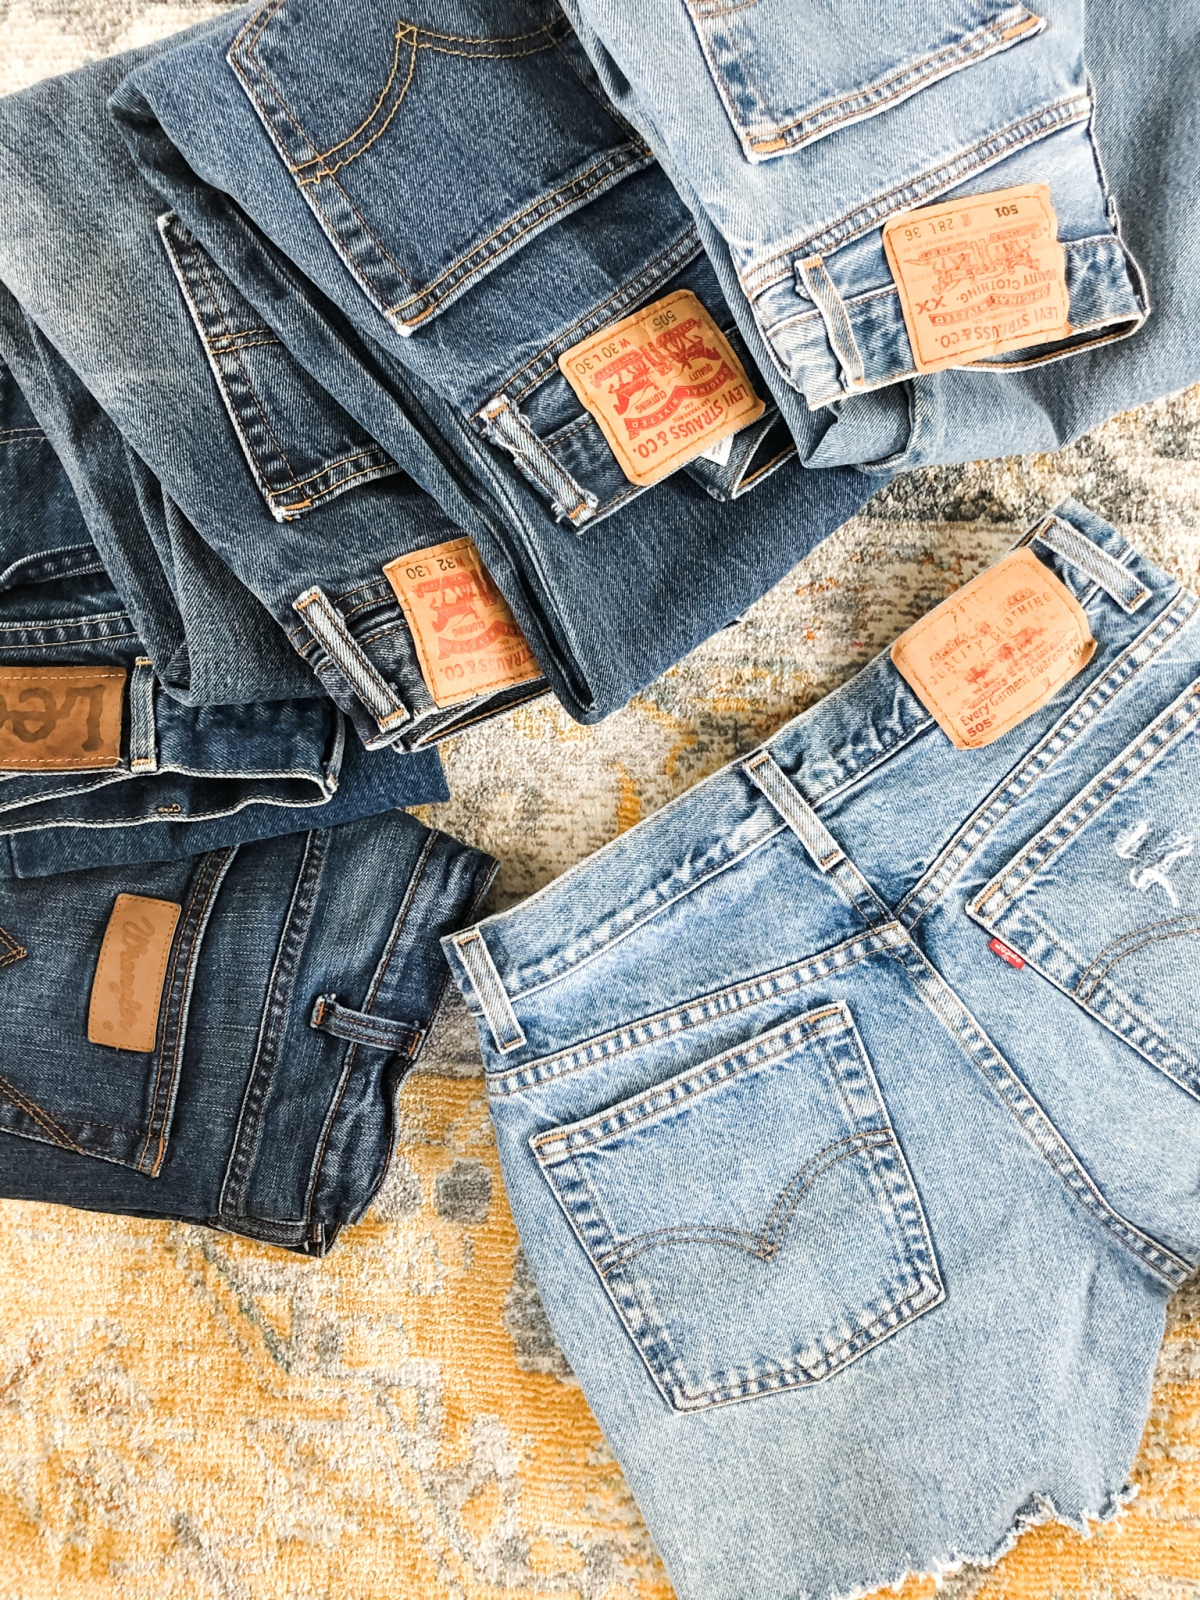 DIY – Turn Your Jeans Into DistressedShorts